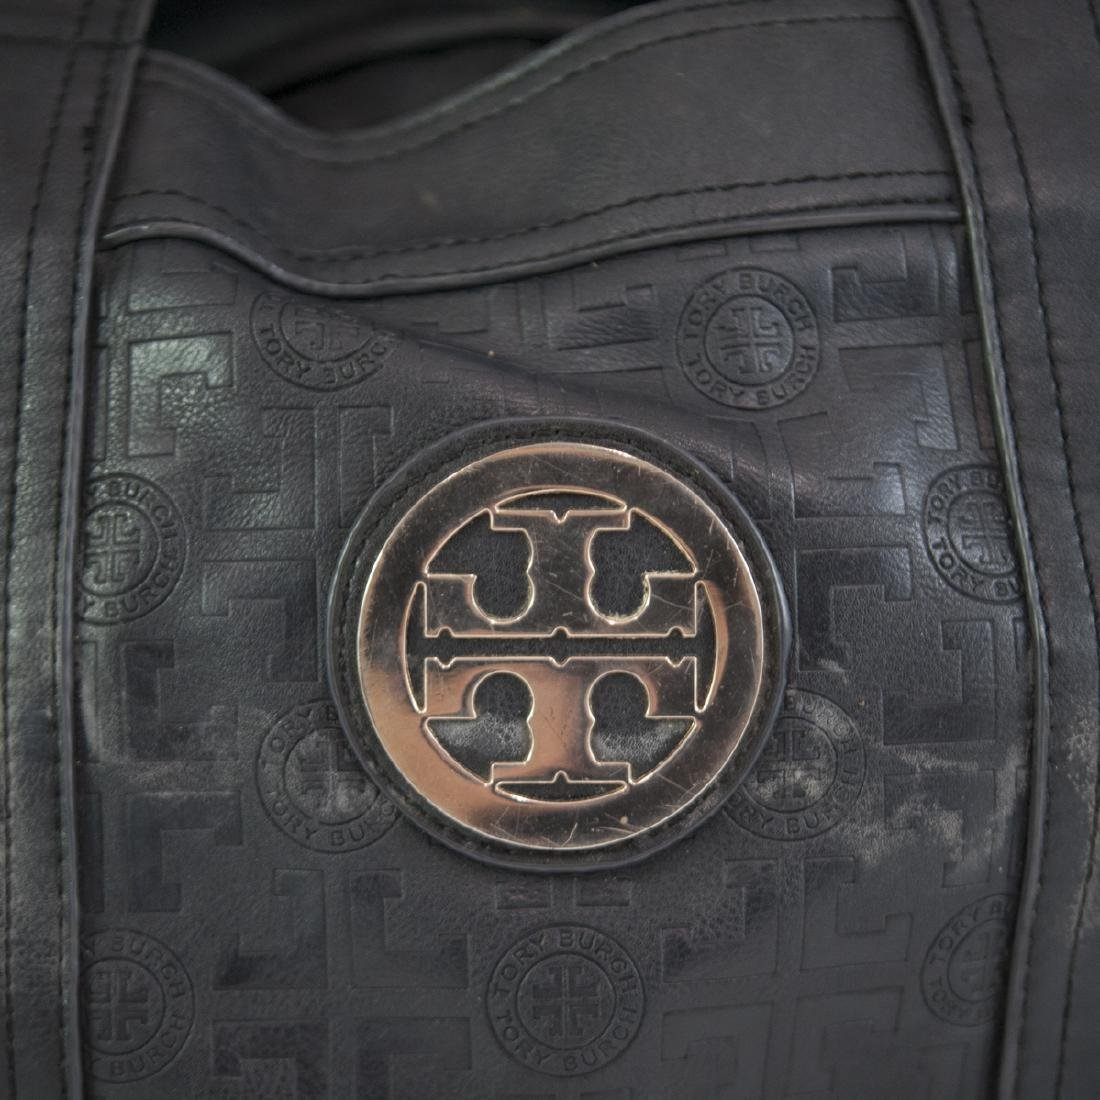 Tory Burch Leather Tote Bag - 2